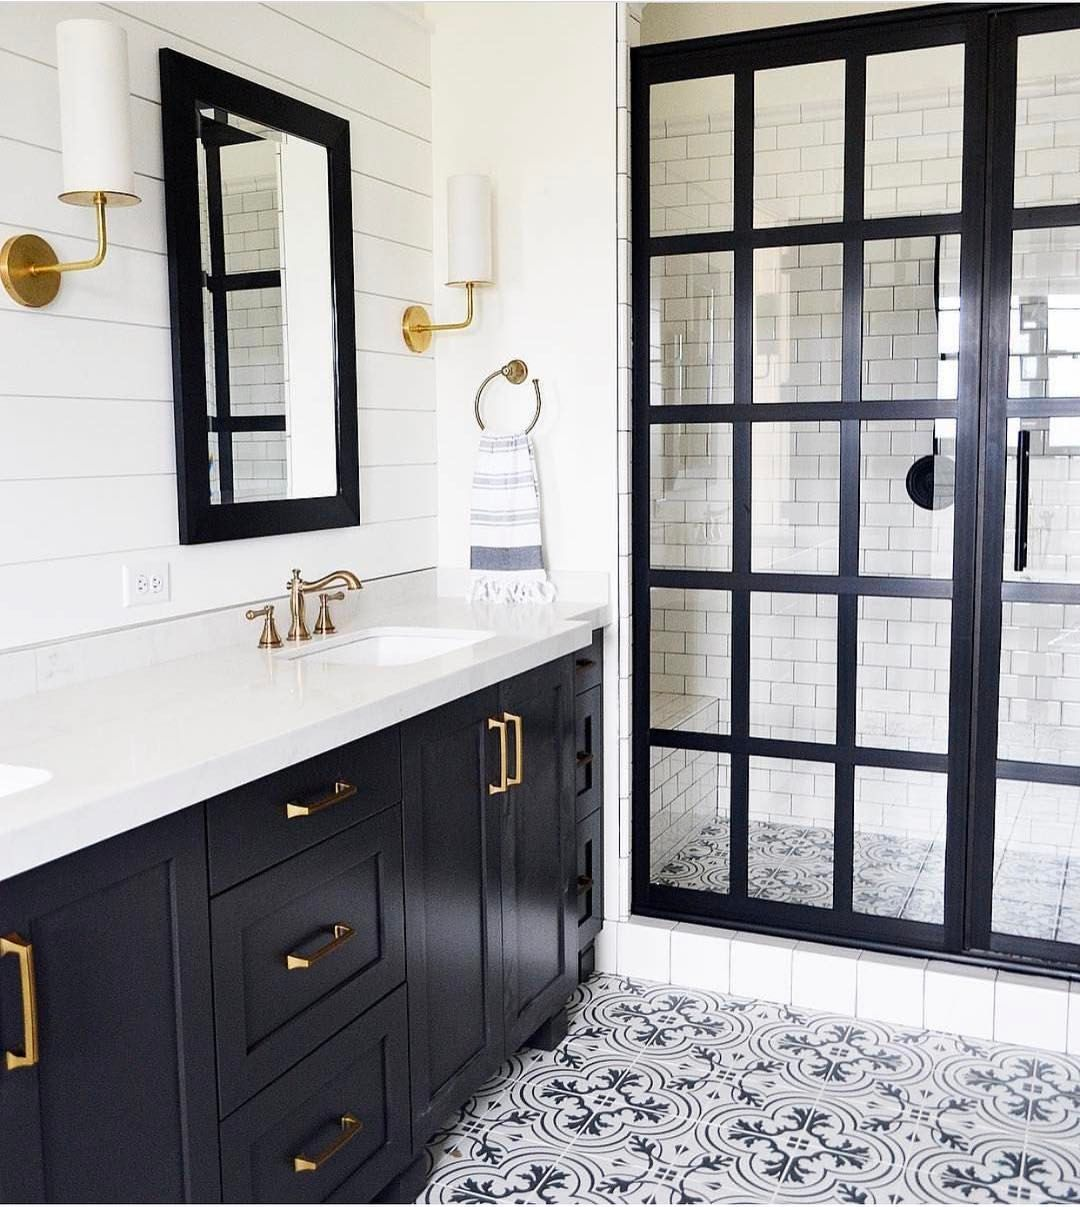 Black and white bathroom beauty with cement tile steel frame shower becki owens on instagram so amazing sitamontgomeryinteriors tag your projects we love sharing them beckiowensfeature bathroom floor dailygadgetfo Image collections